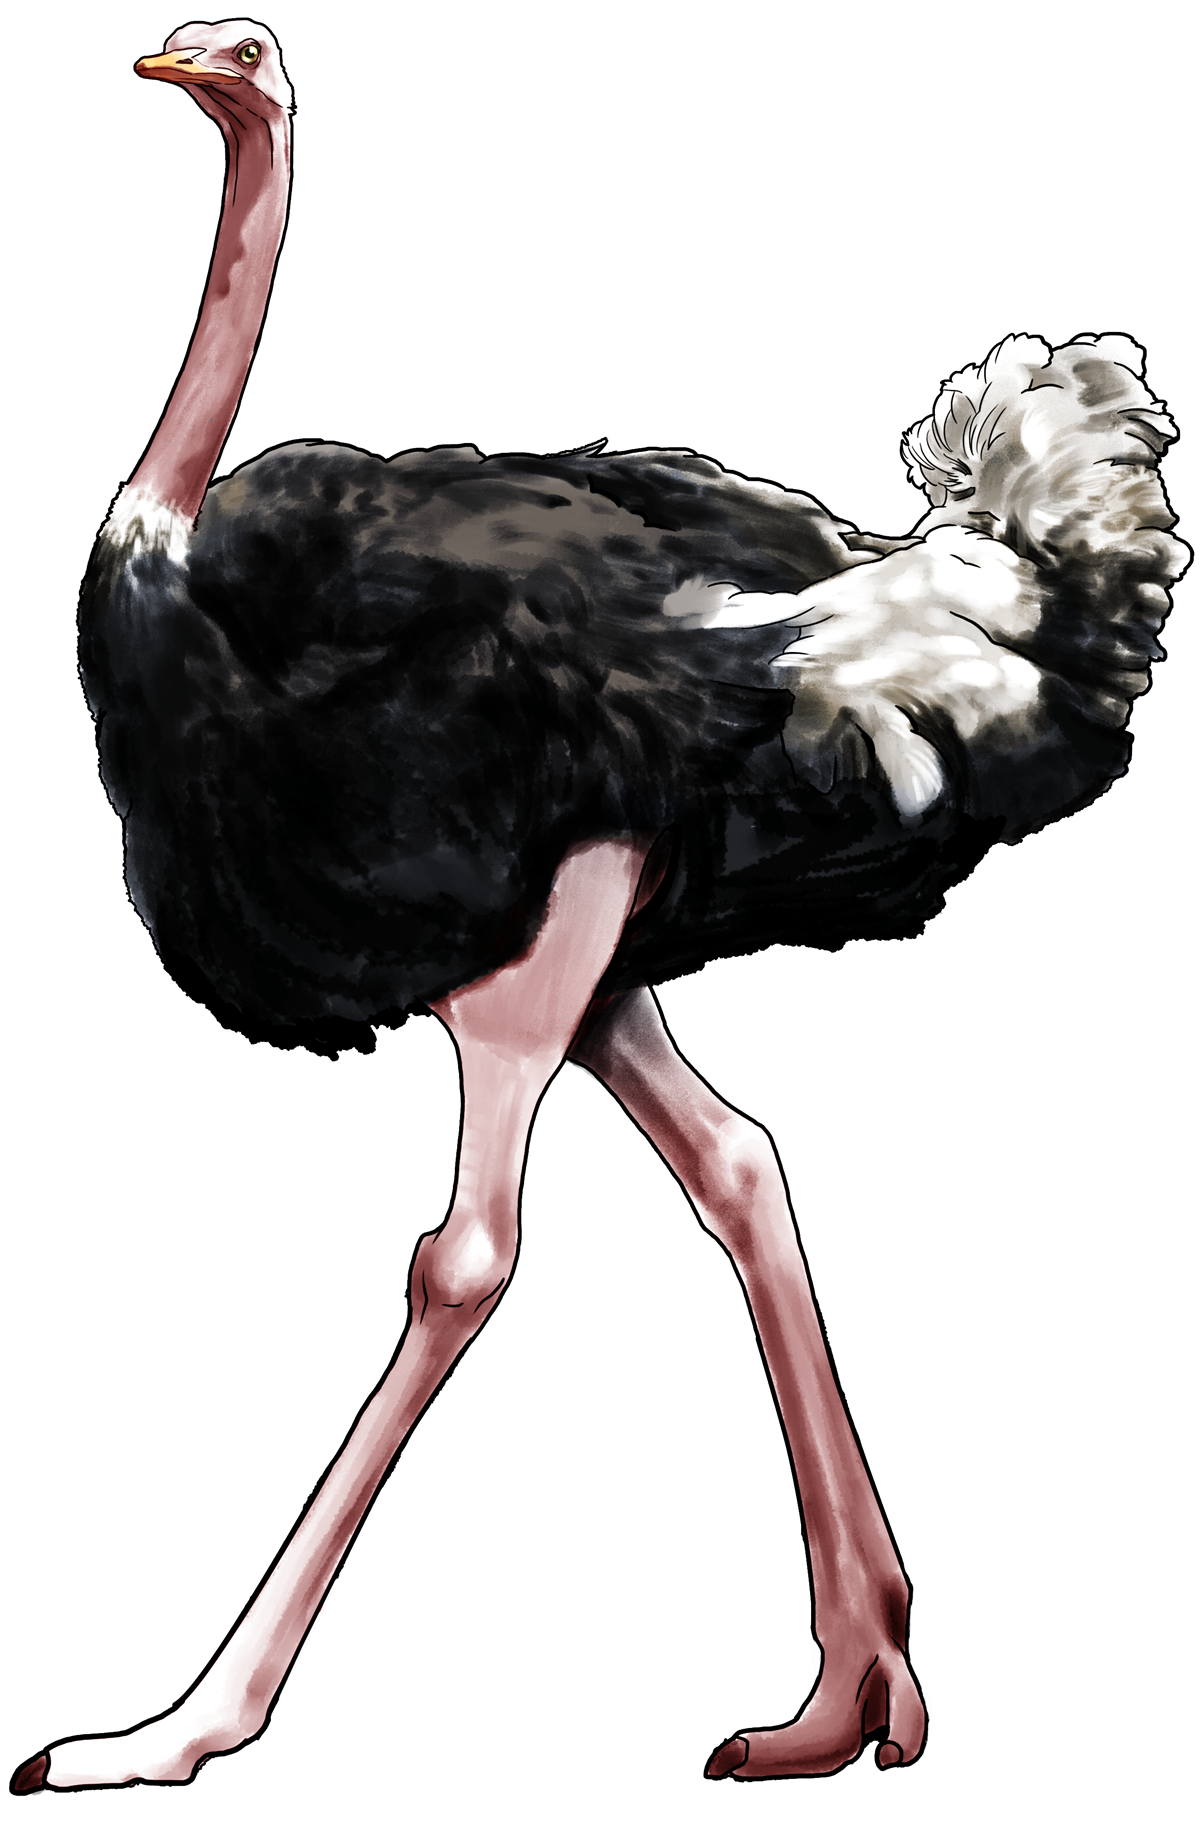 Ostrich PNG images free download.